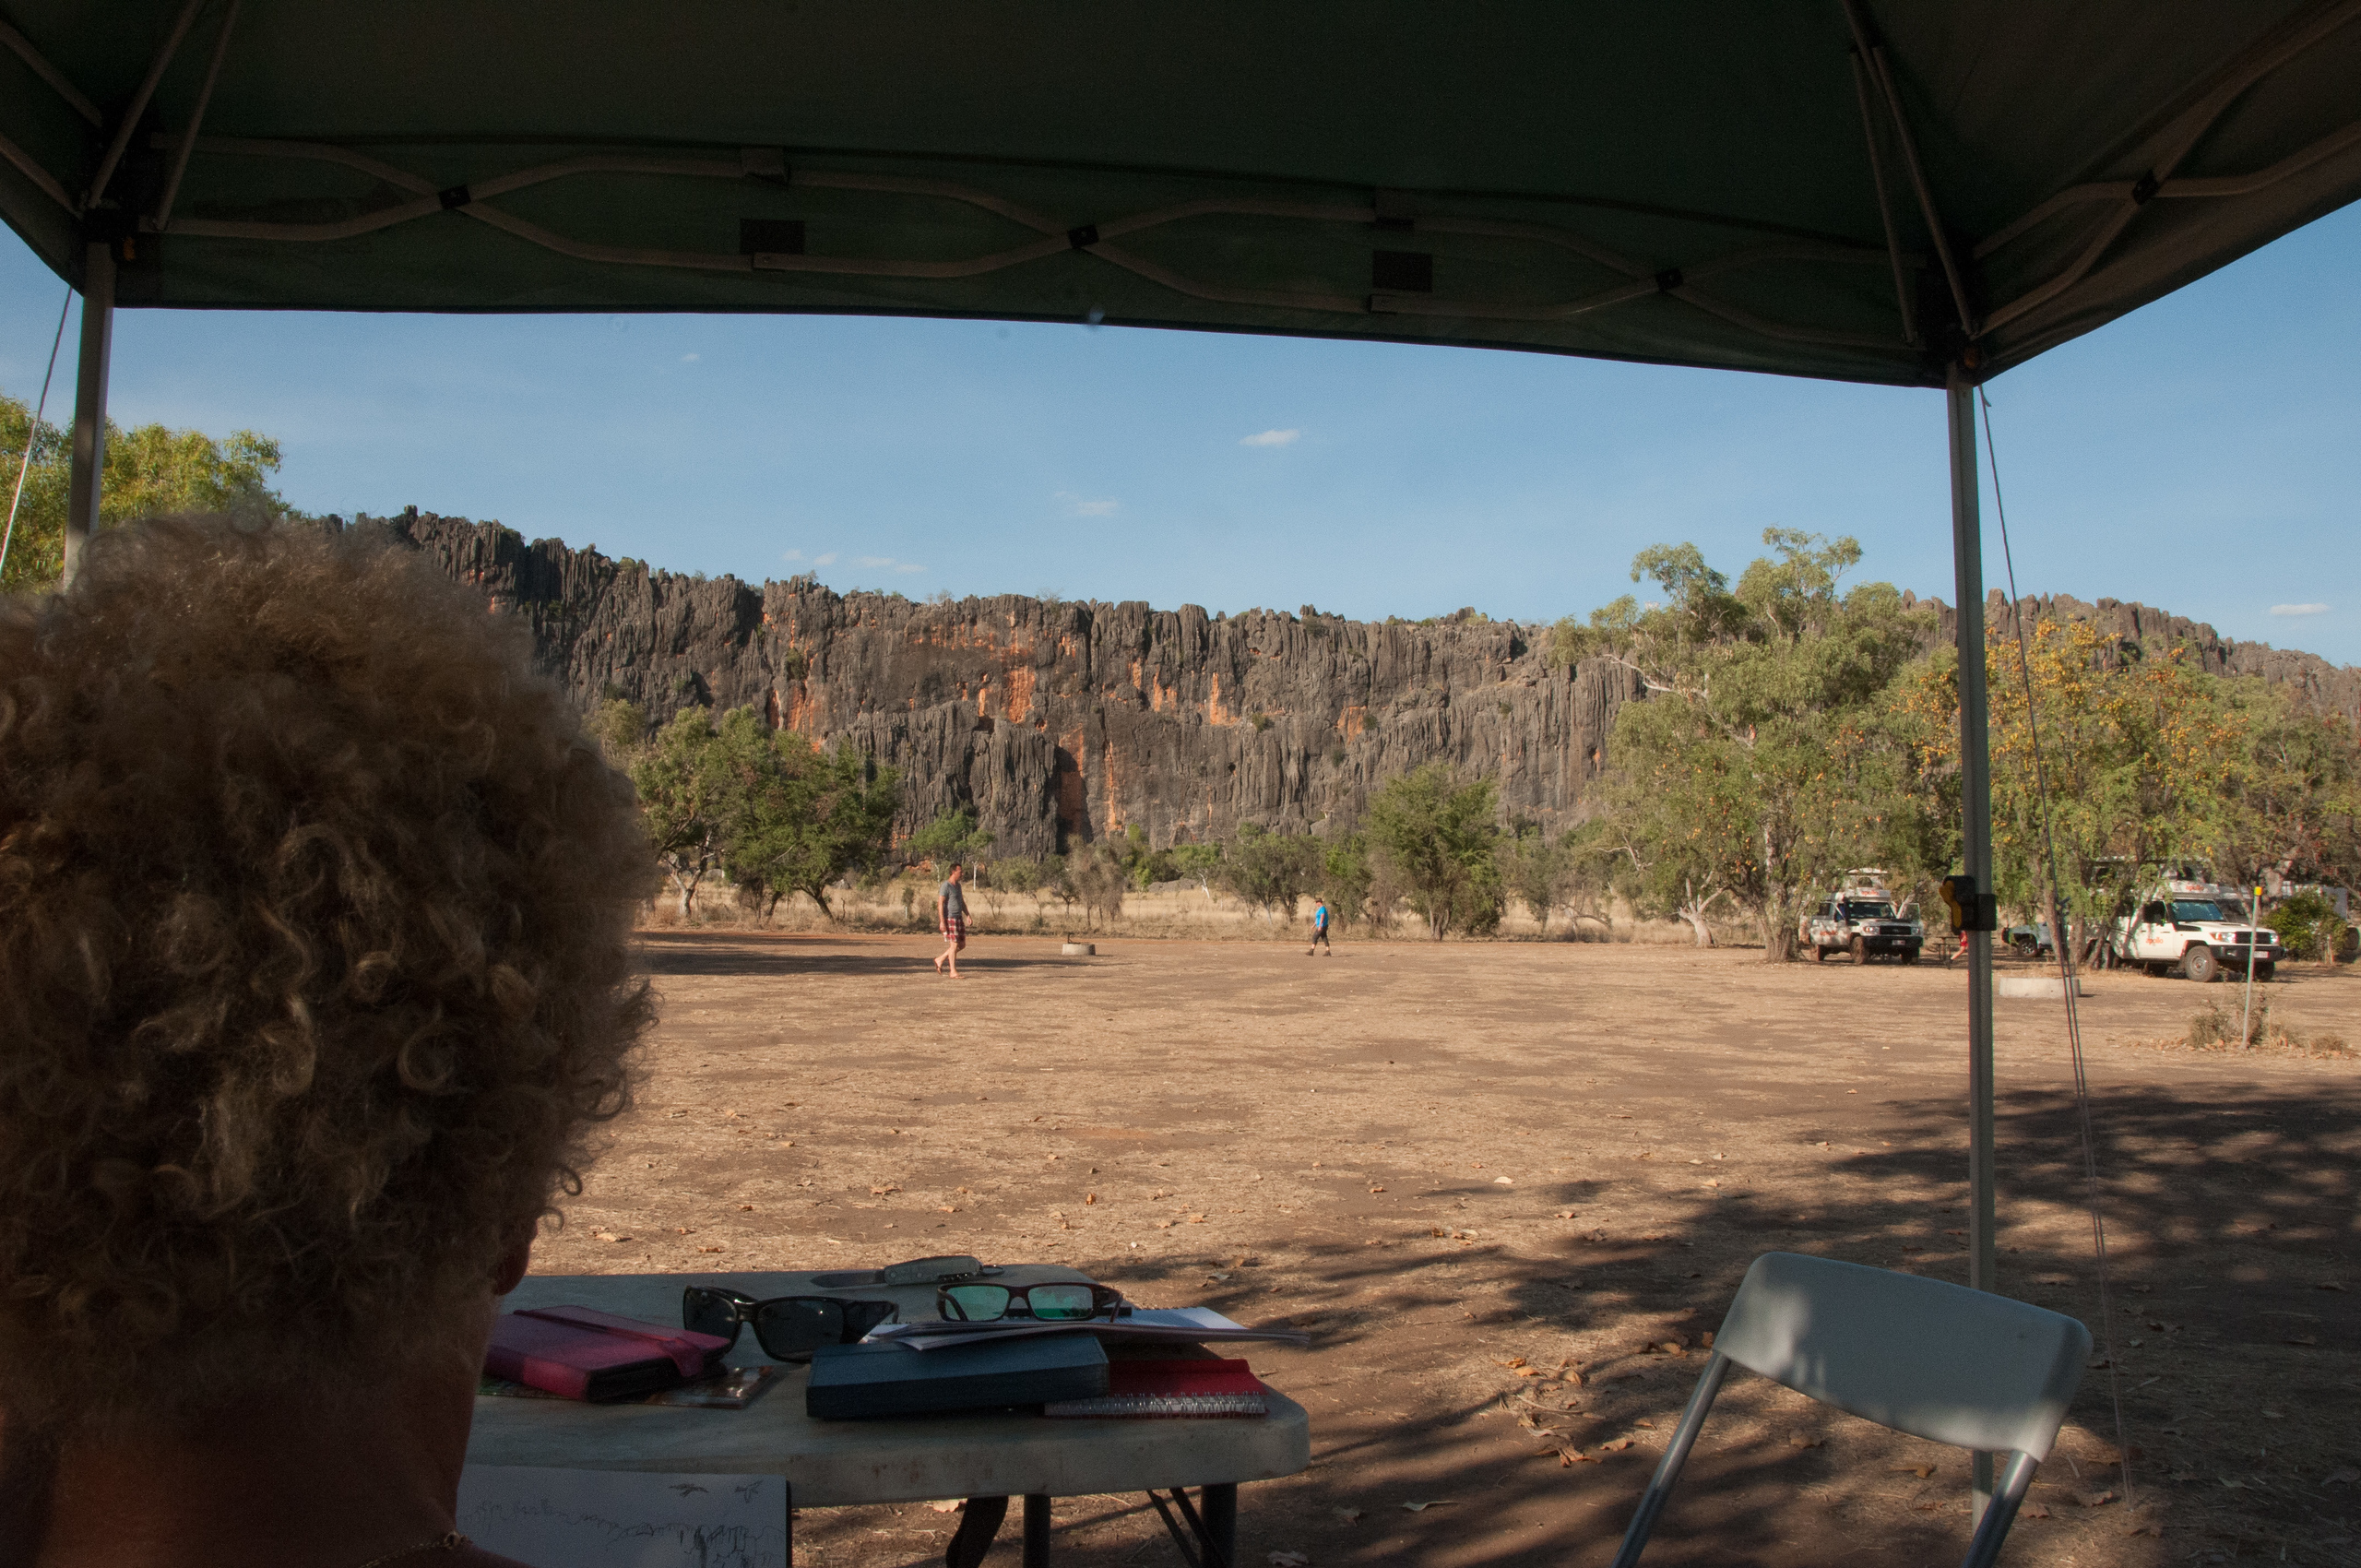 View from our campsite at Windjana